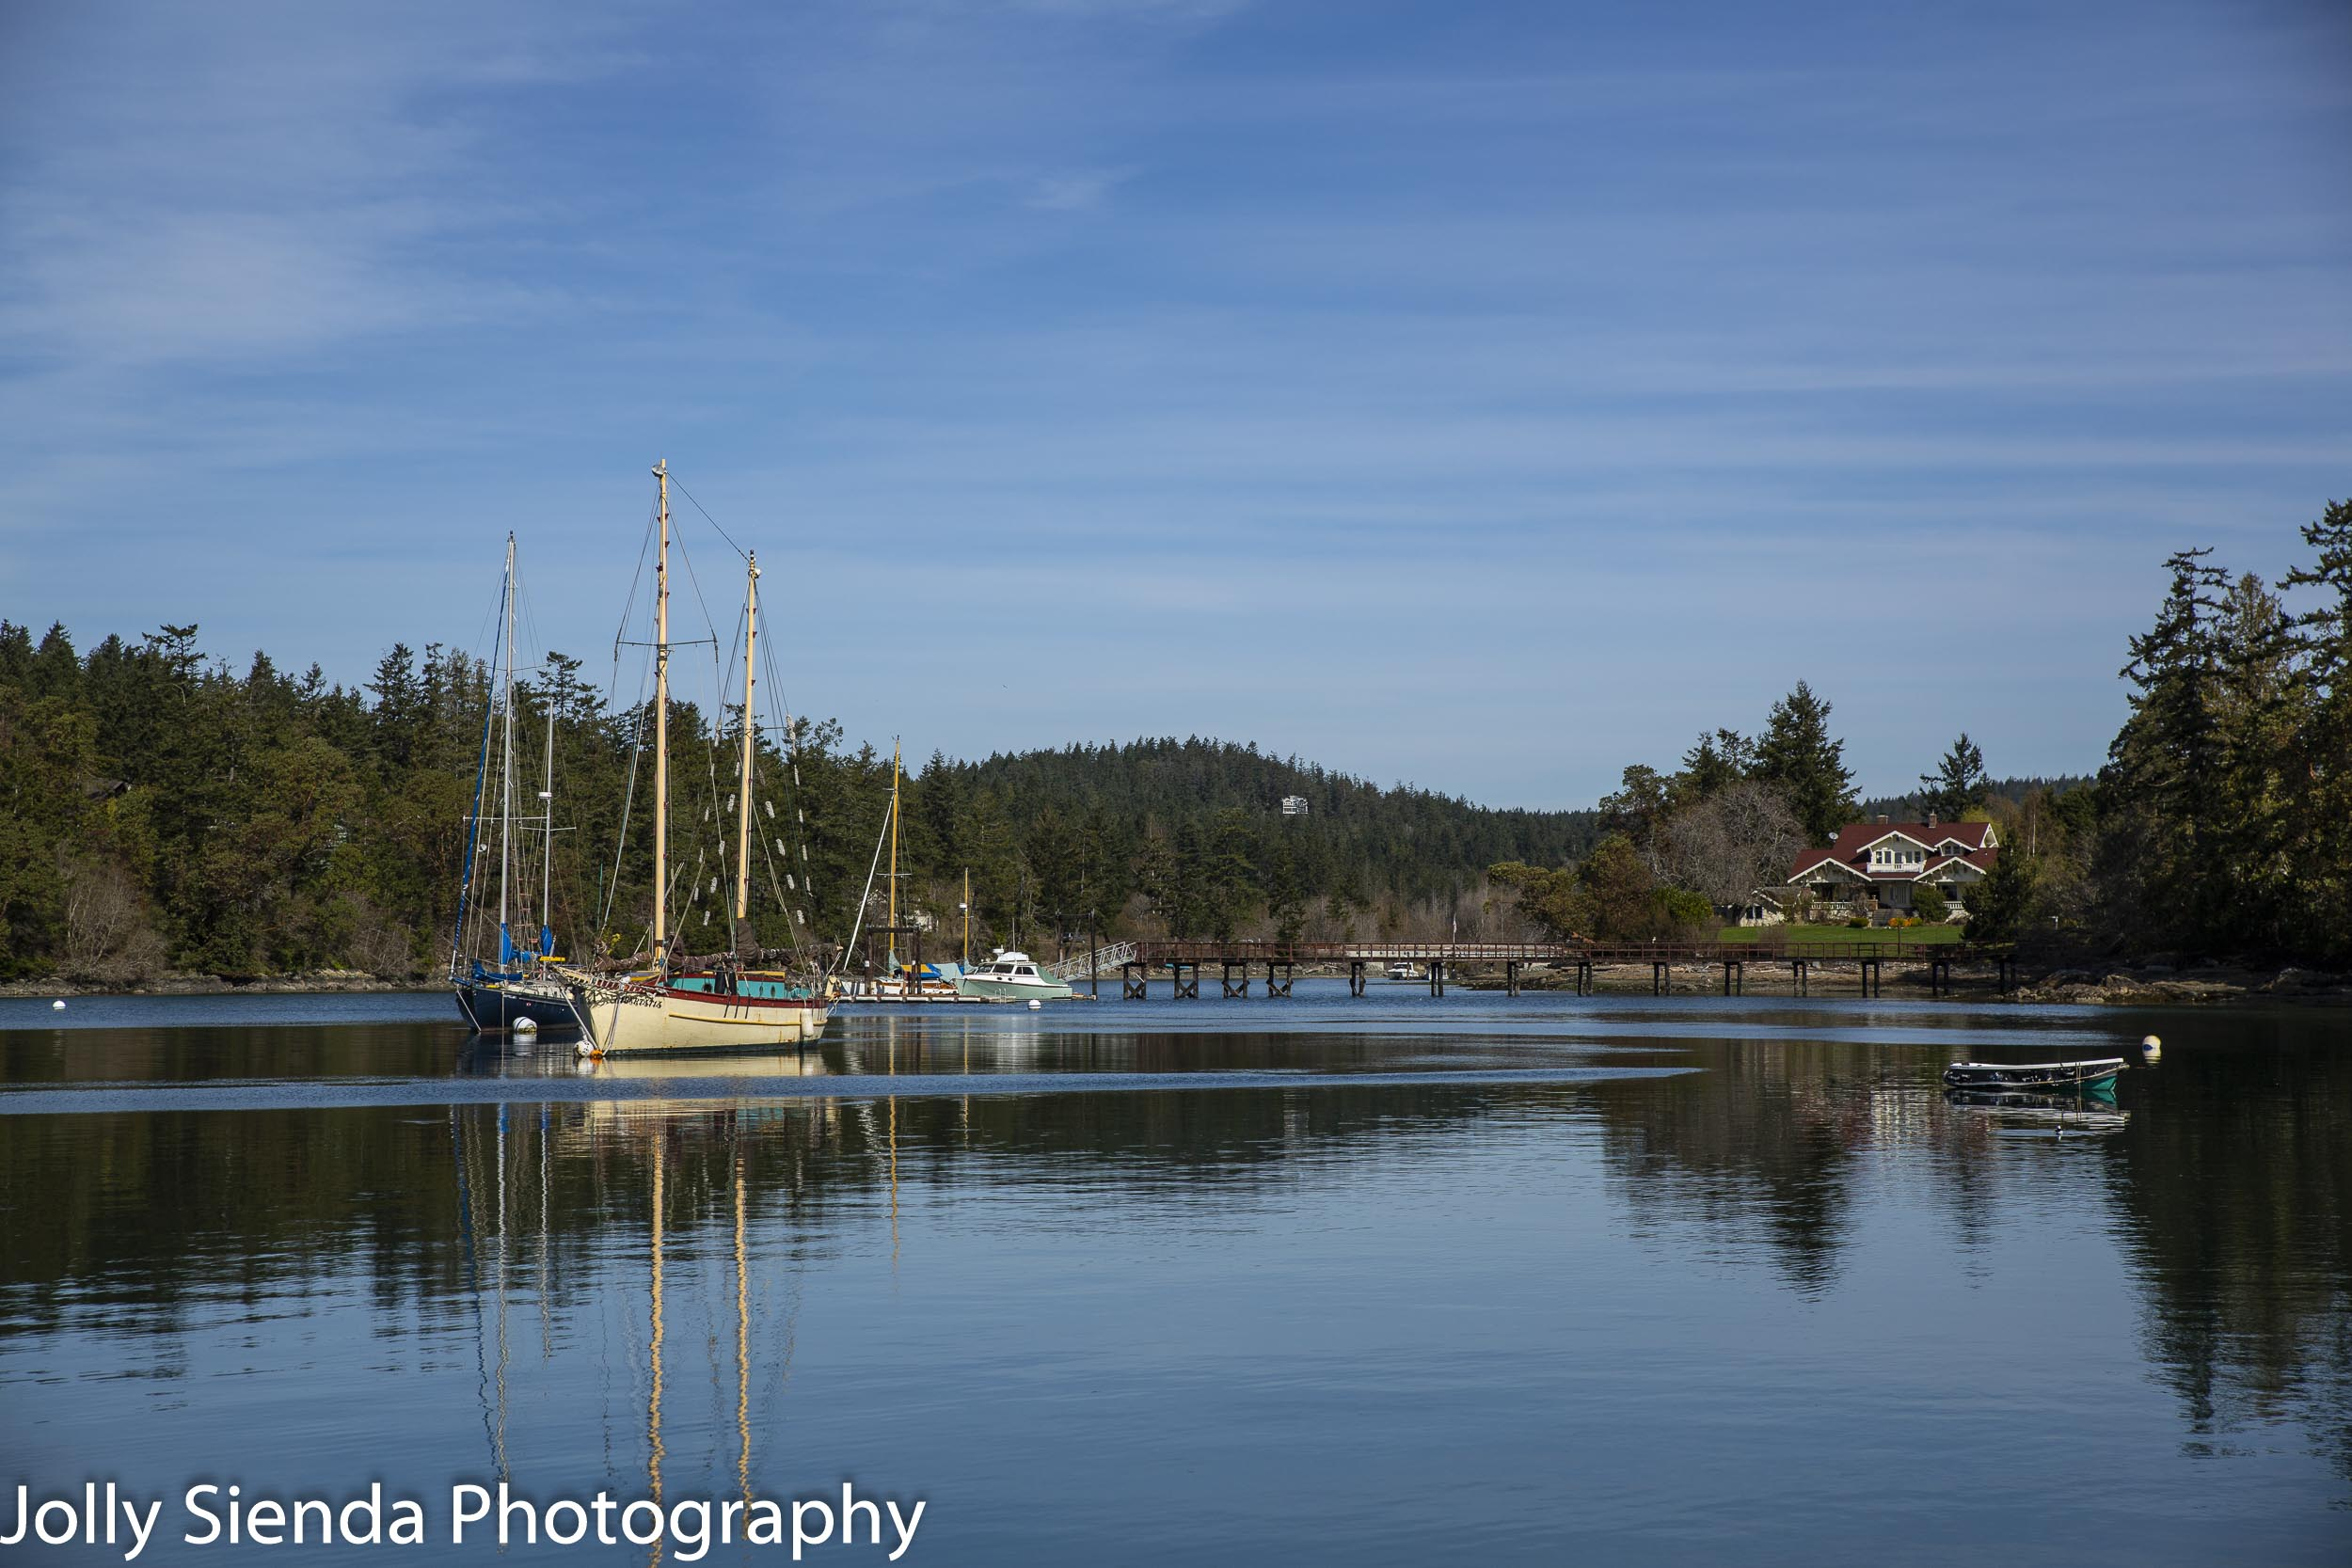 Calm on the water inlet with boats and sailboats